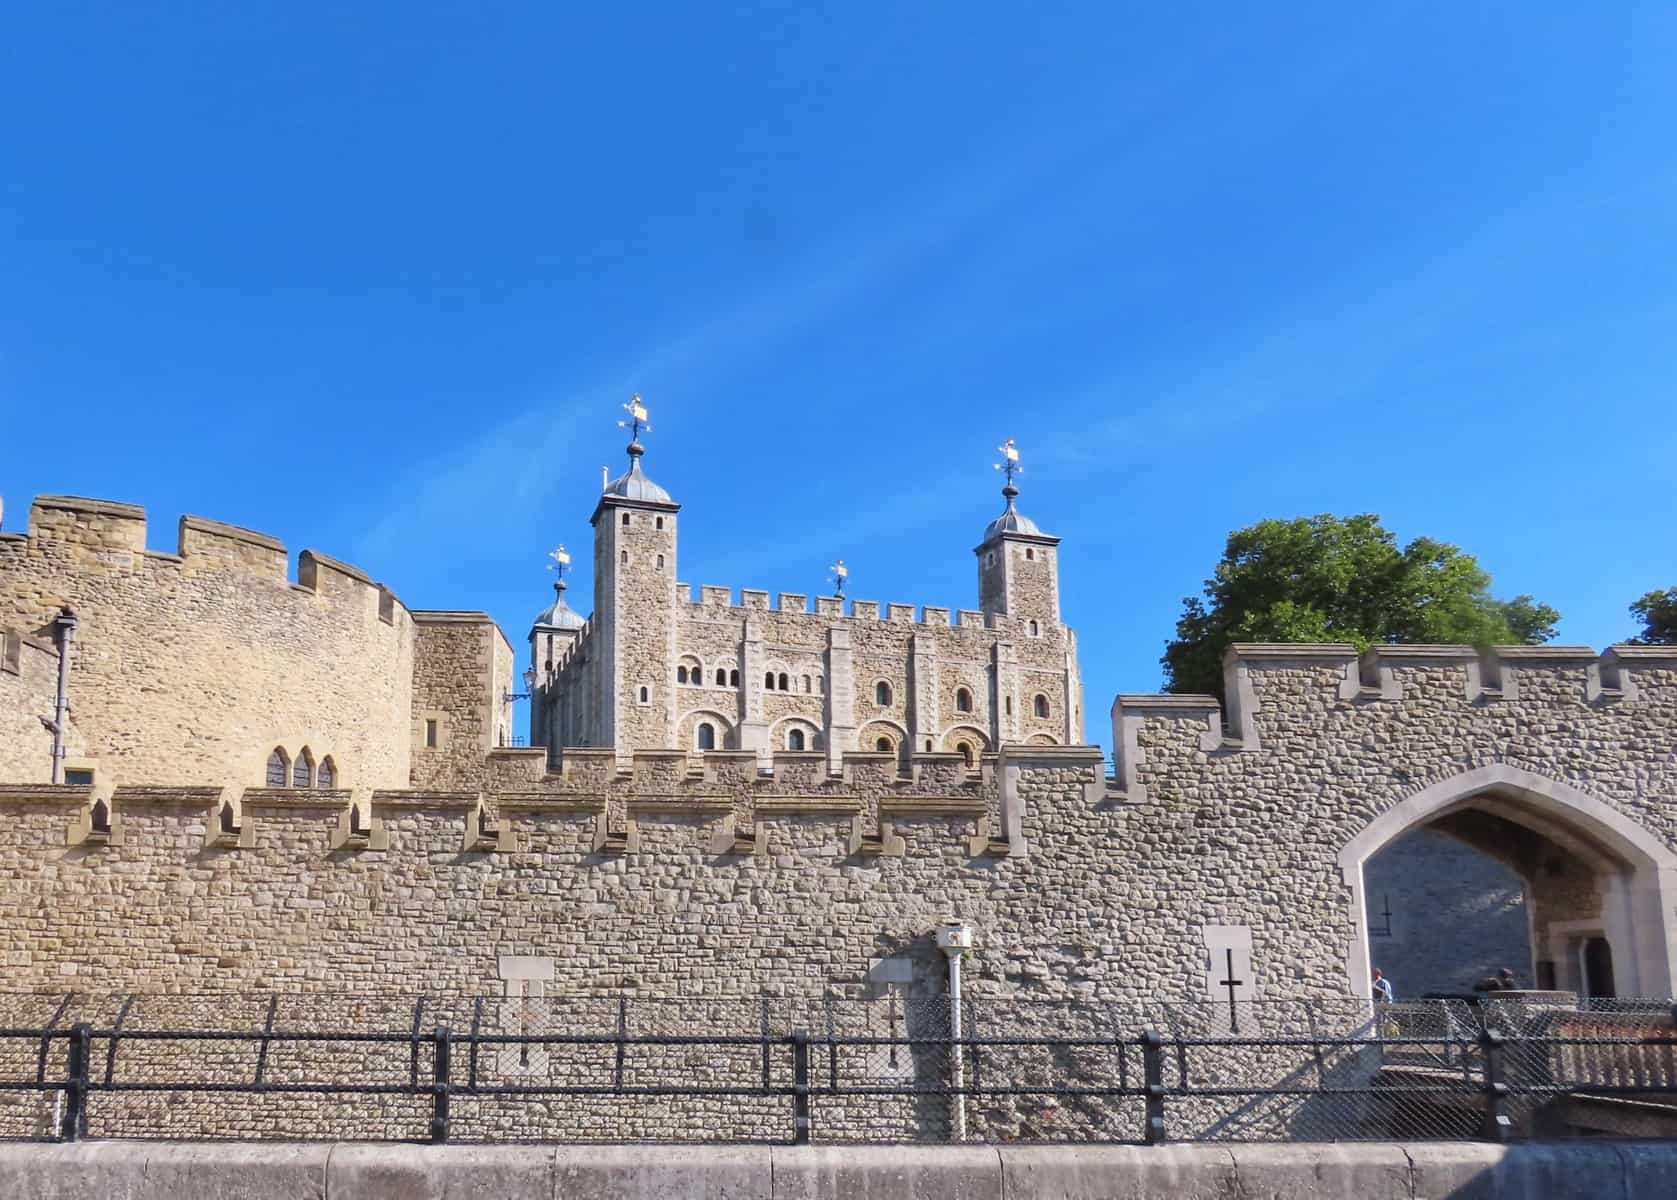 The Tower of London a London prison museum